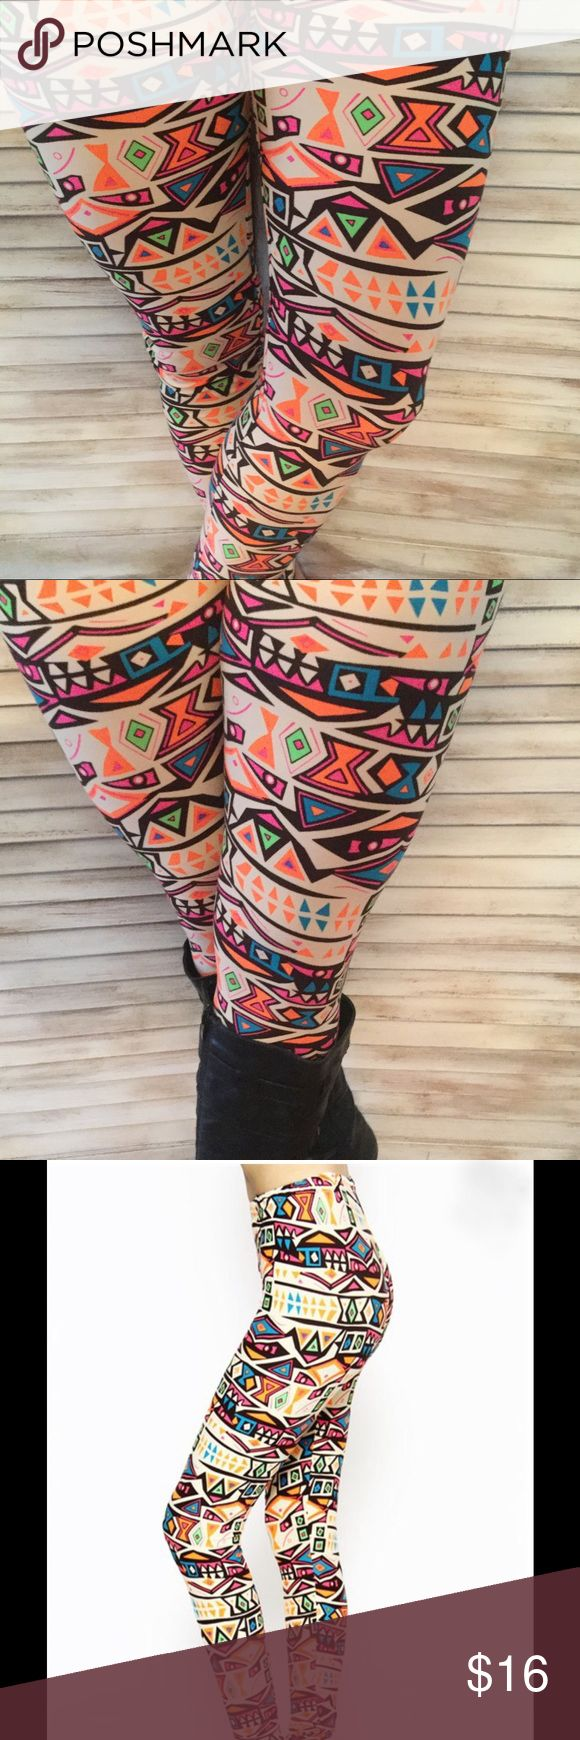 Aztec Tribal Print Leggings Super cute and cozy lounge pants.  Light weight with no pockets.  These comfy cozy pants are perfect for the gym, yoga, or lounging around. Aztec Navajo Print. Black, Neon Orange and Cream - 92% Polyester/8% Spandex. Inseam - 27, Waist - 11.5, Length - 37, Rise - 10.5 Pants Leggings